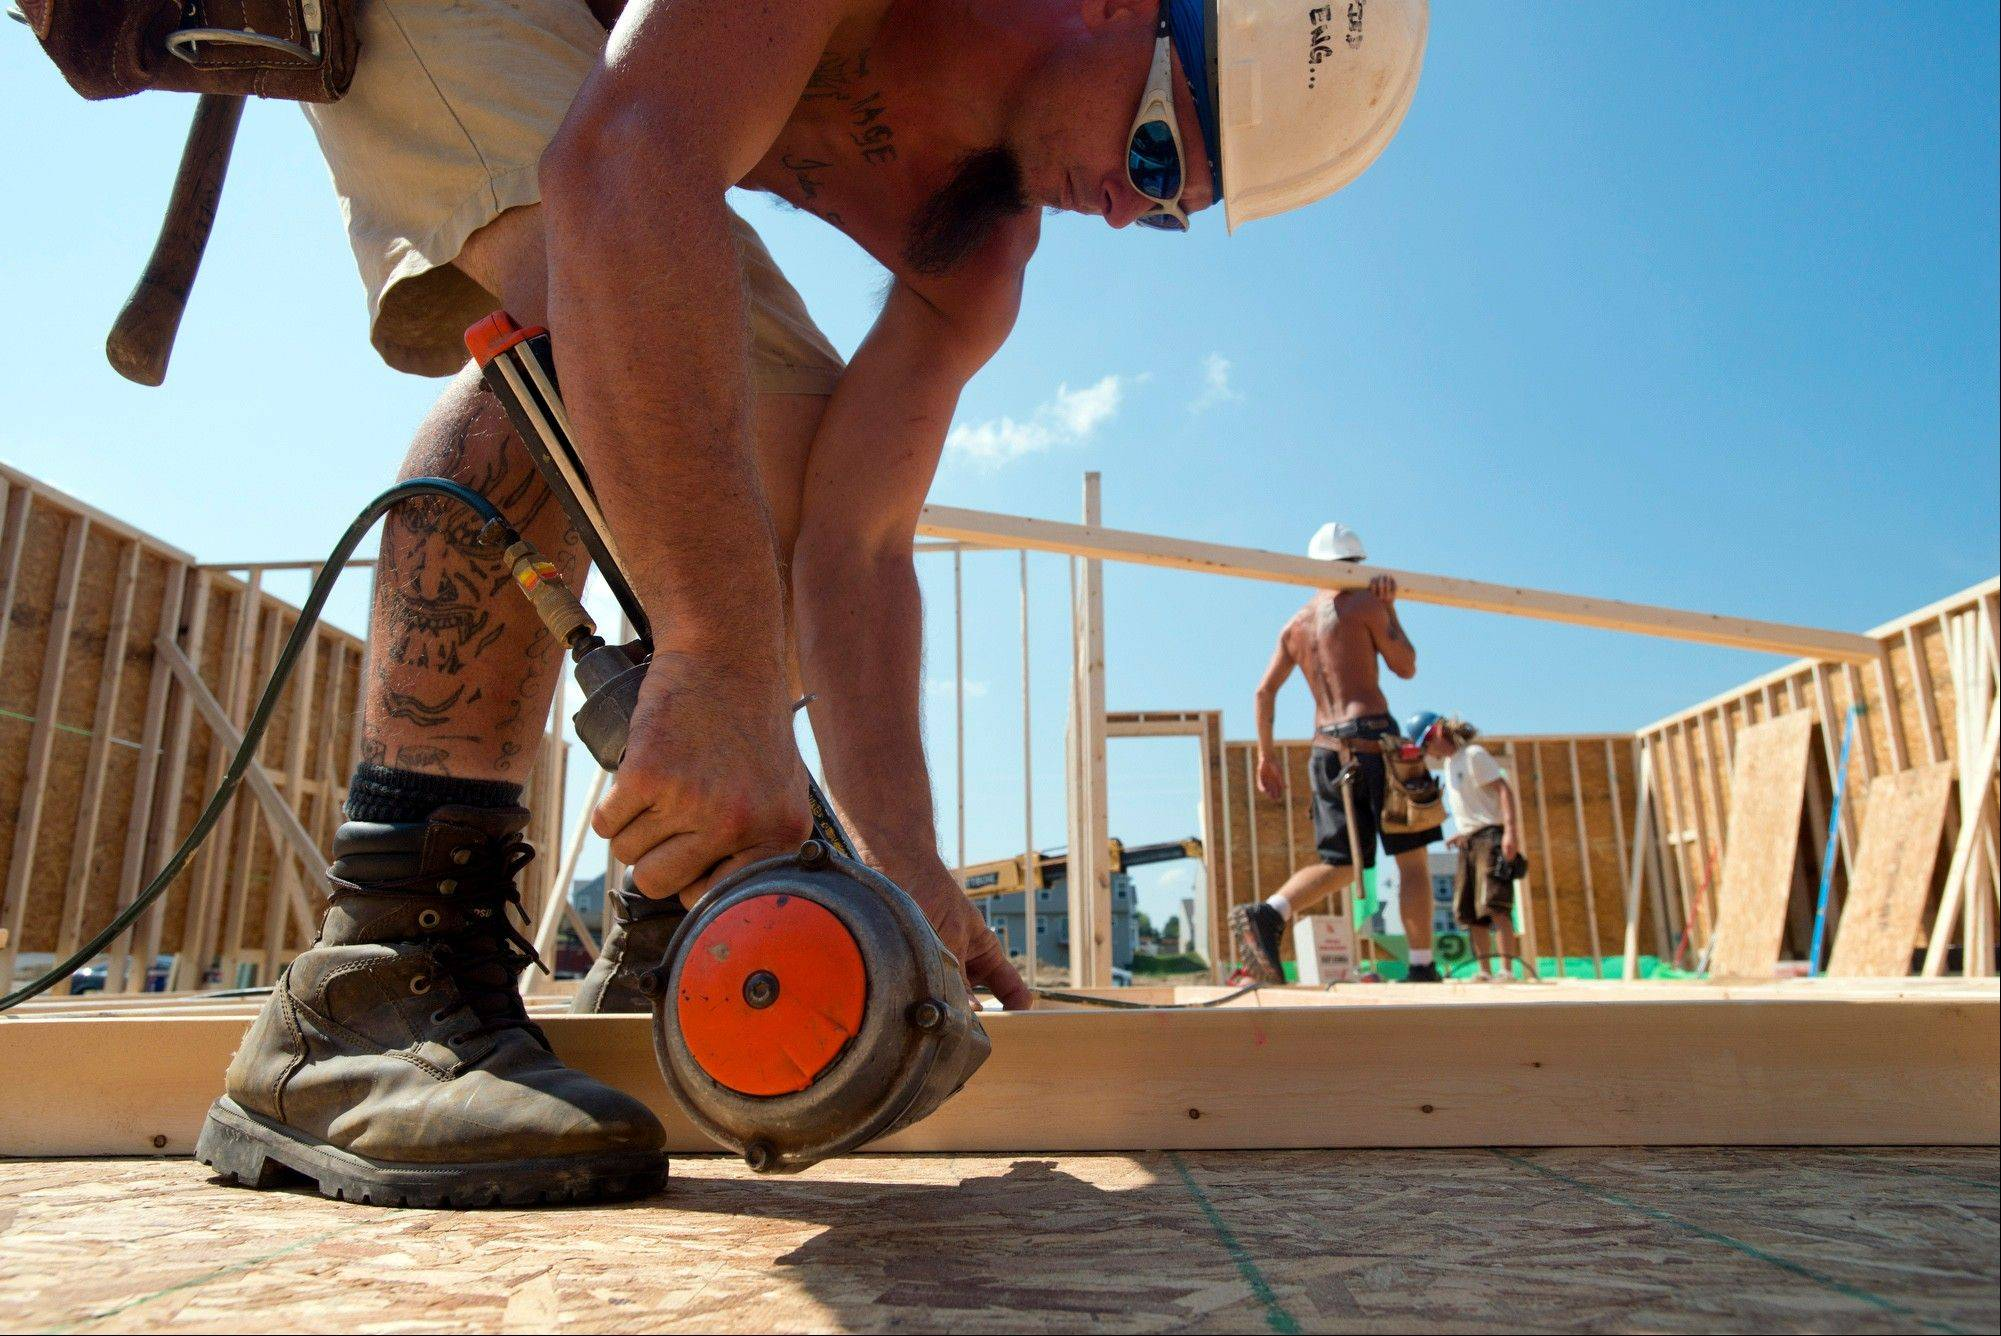 Confidence among U.S. homebuilders is at its highest level in nearly eight years, fueled by optimism that demand for new homes will drive sales growth into next year.